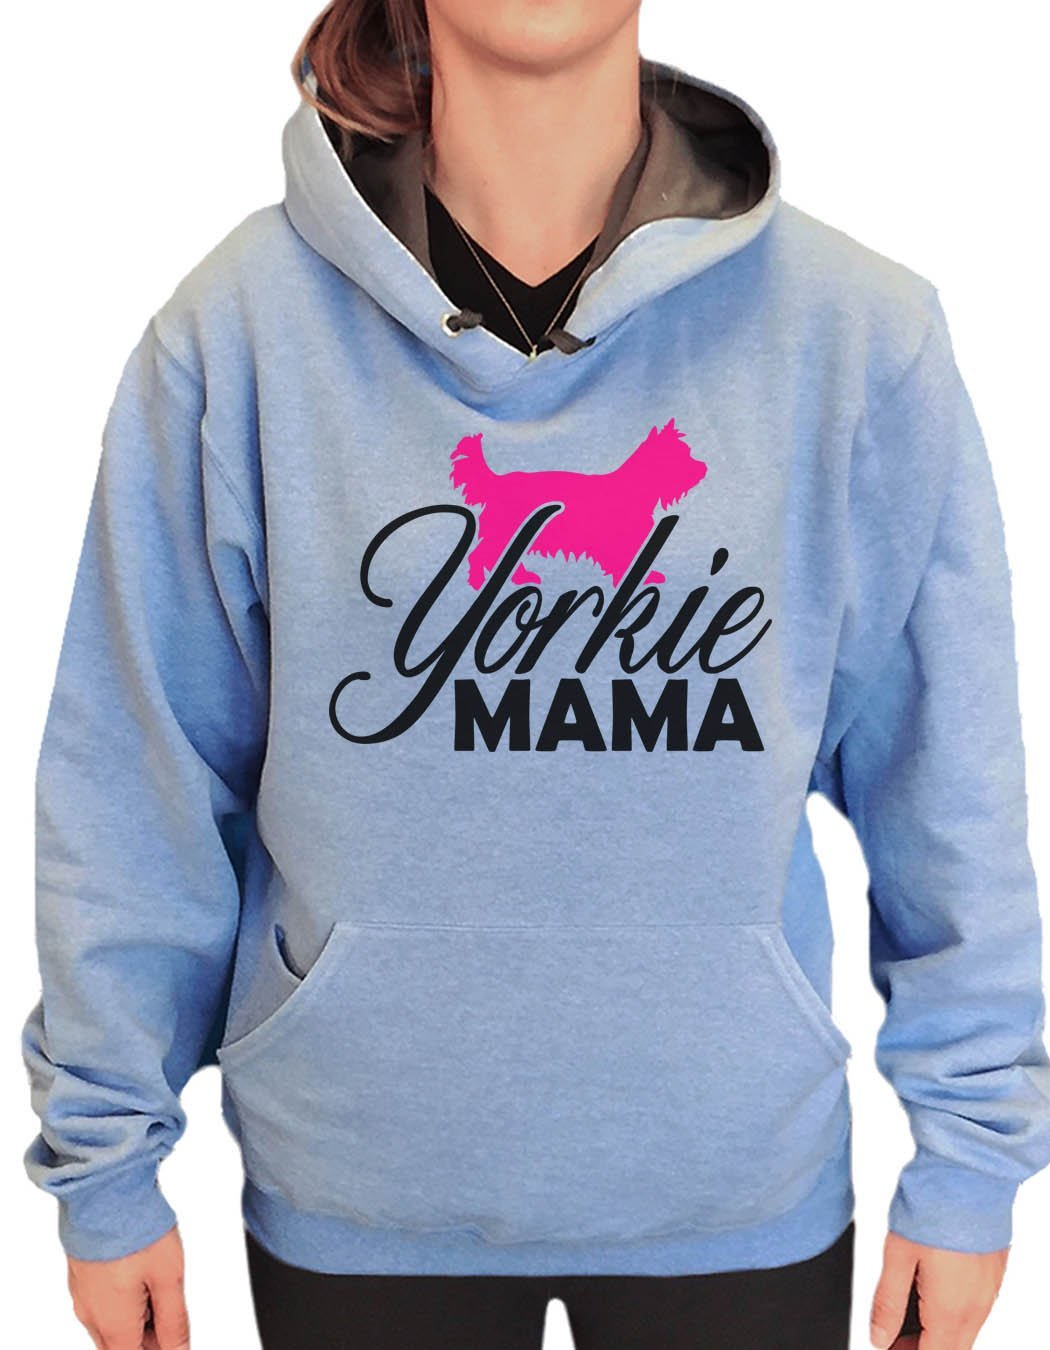 UNISEX HOODIE - Yorkie Mama - FUNNY MENS AND WOMENS HOODED SWEATSHIRTS - 2181 Funny Shirt Small / North Carolina Blue